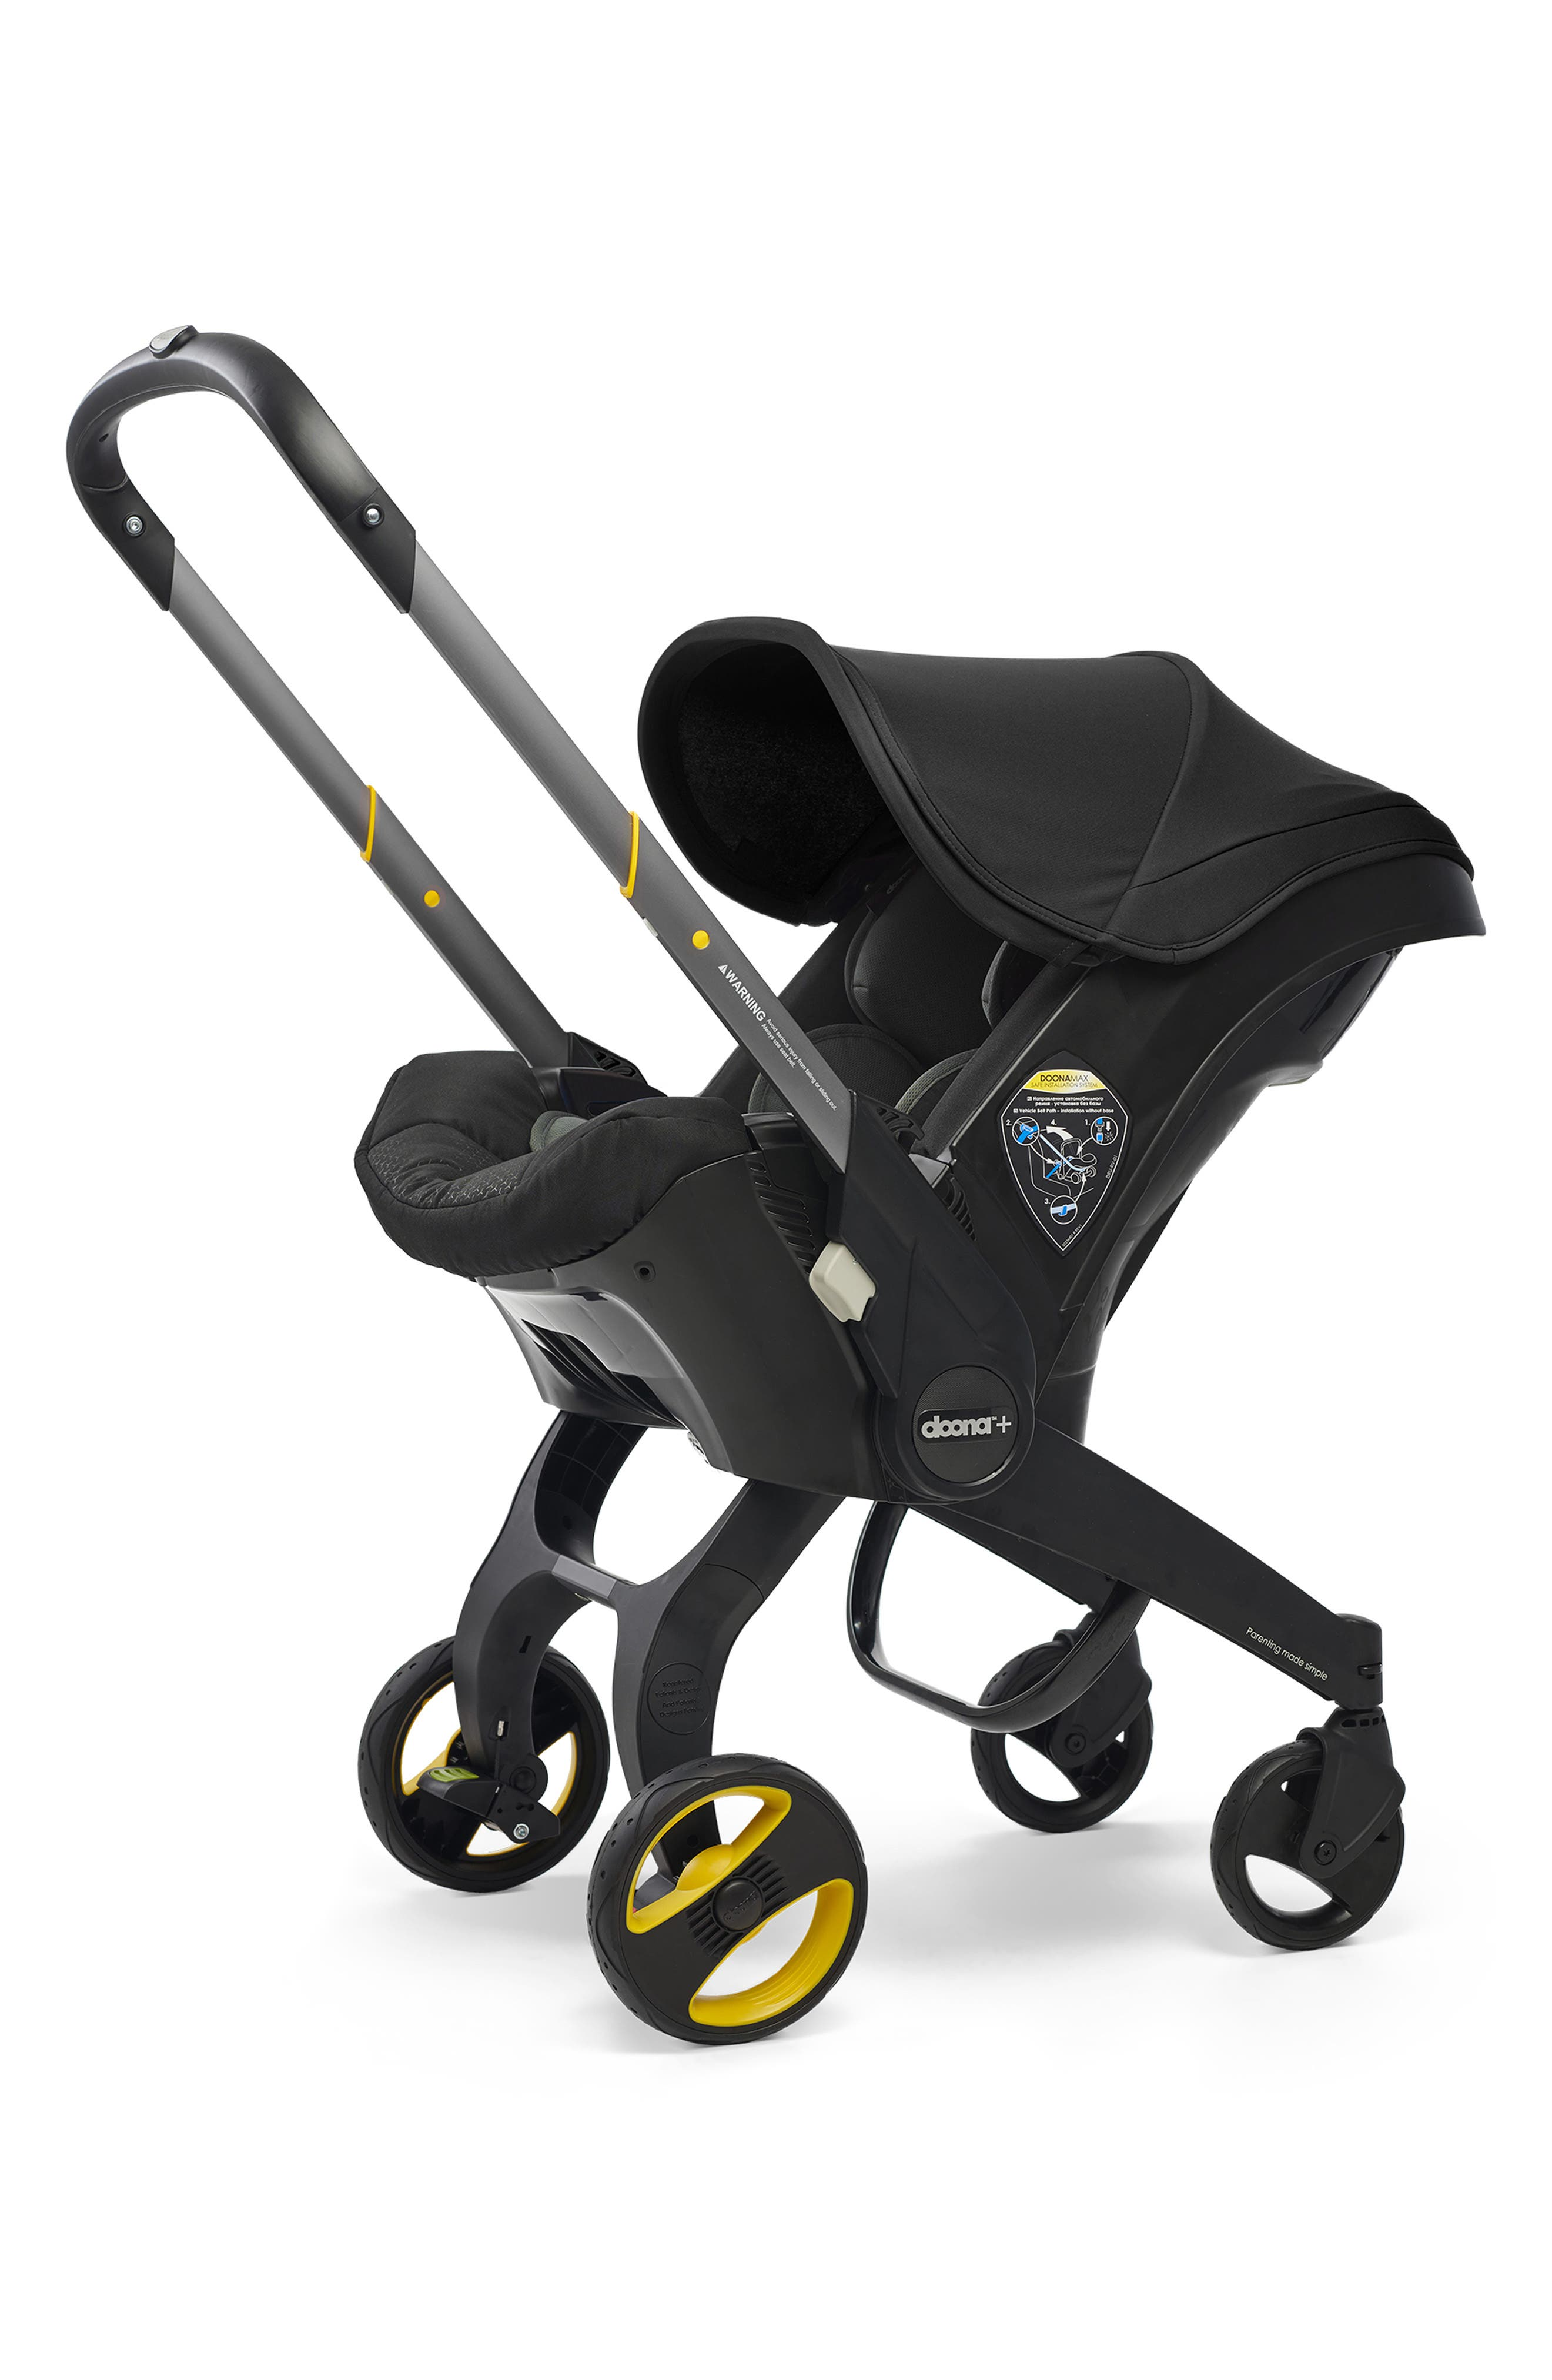 Infant Doona Convertible Infant Car Seatcompact Stroller System With Base Size One Size  Black